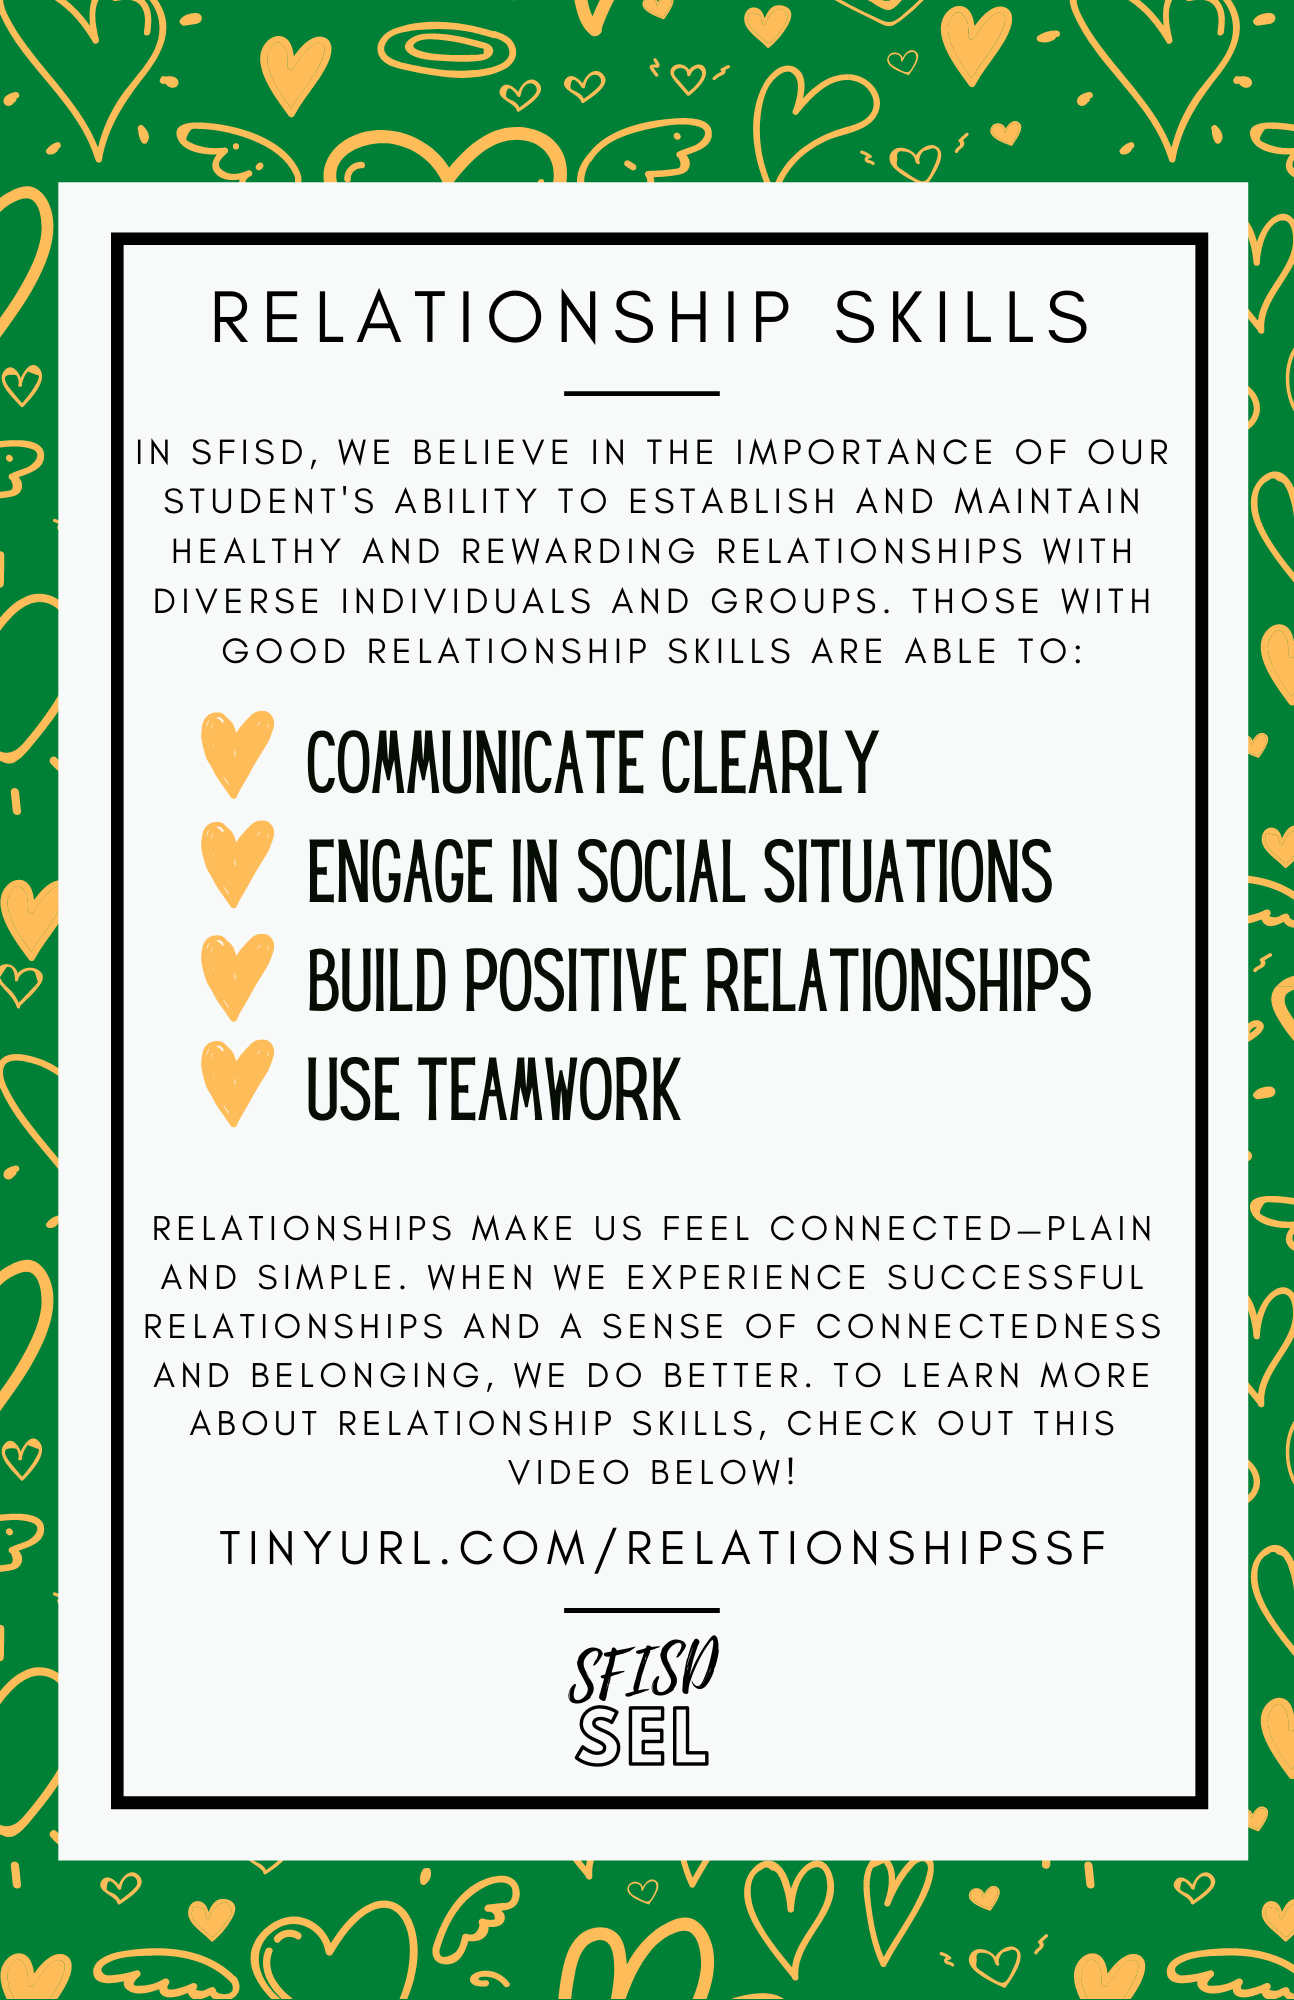 SFISD SEL Weekly Competency Focus - Relationship Skills